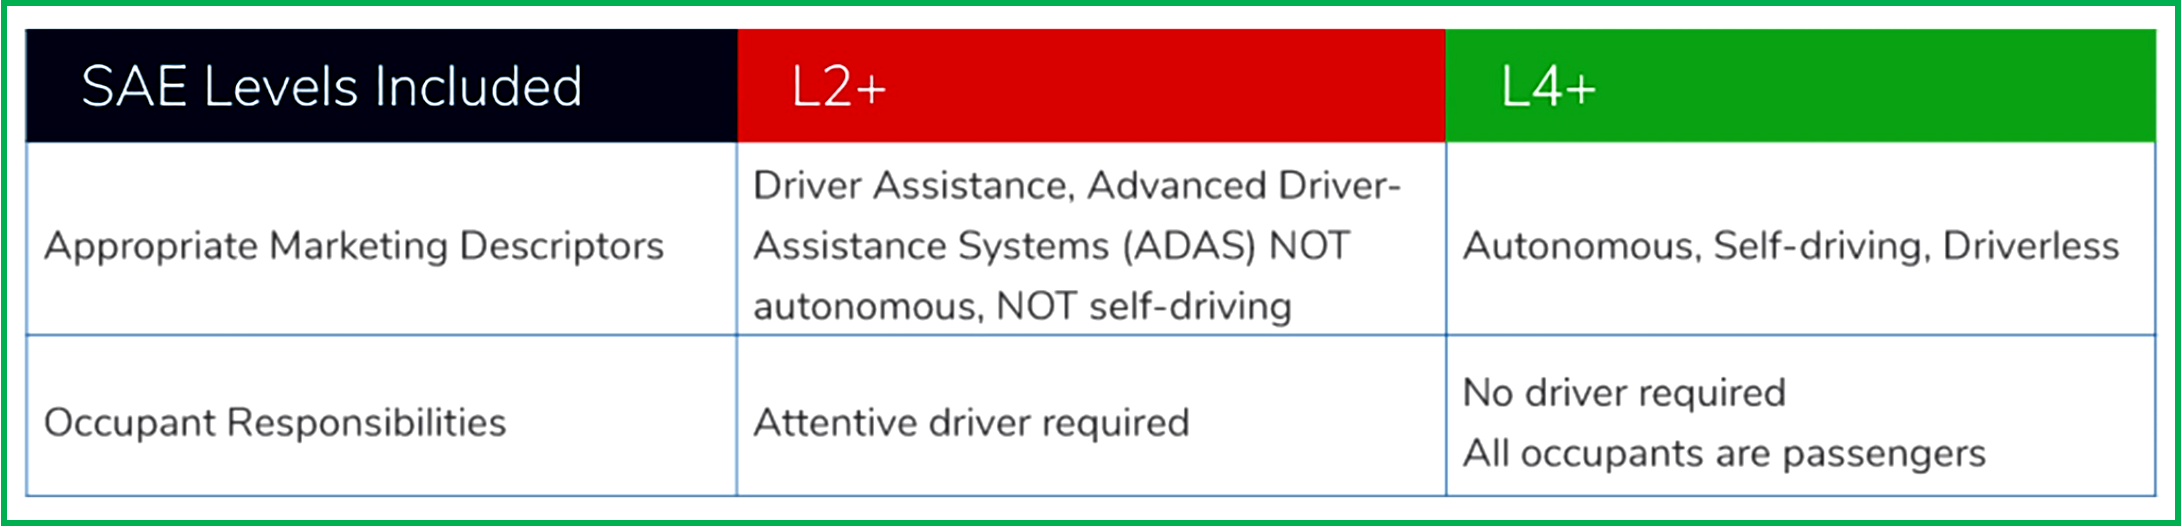 AutoInformed.com on Suggested Marketing Terms for SAE Driver Assist and Autonomous Vehicles